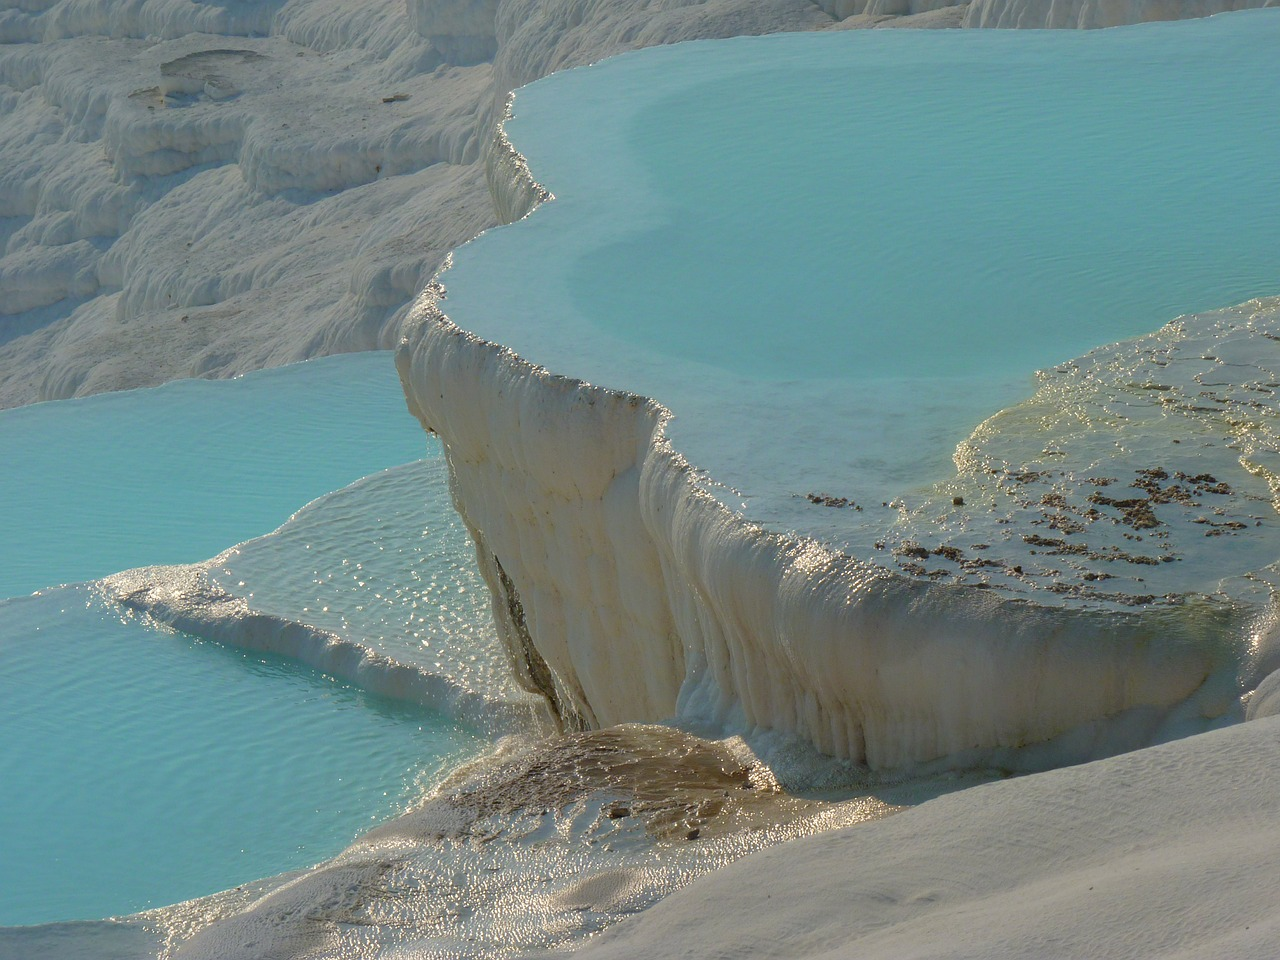 pamukkale turquoise lime sinter terrace free photo